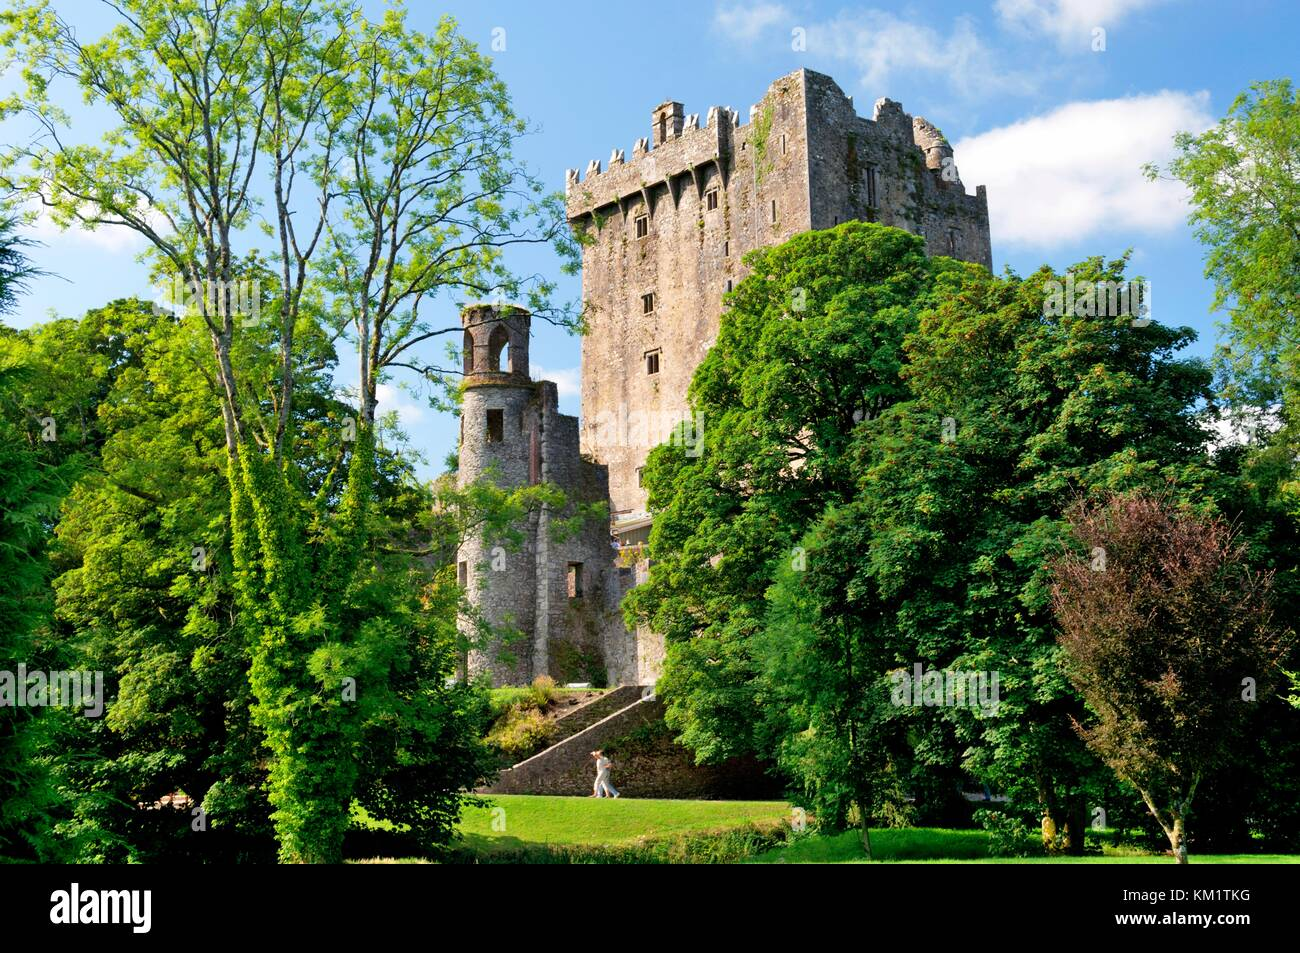 Blarney Castle, County Cork, Ireland Eire. The Blarney Stone sits in the battlements at the top of the castle keep. - Stock Image